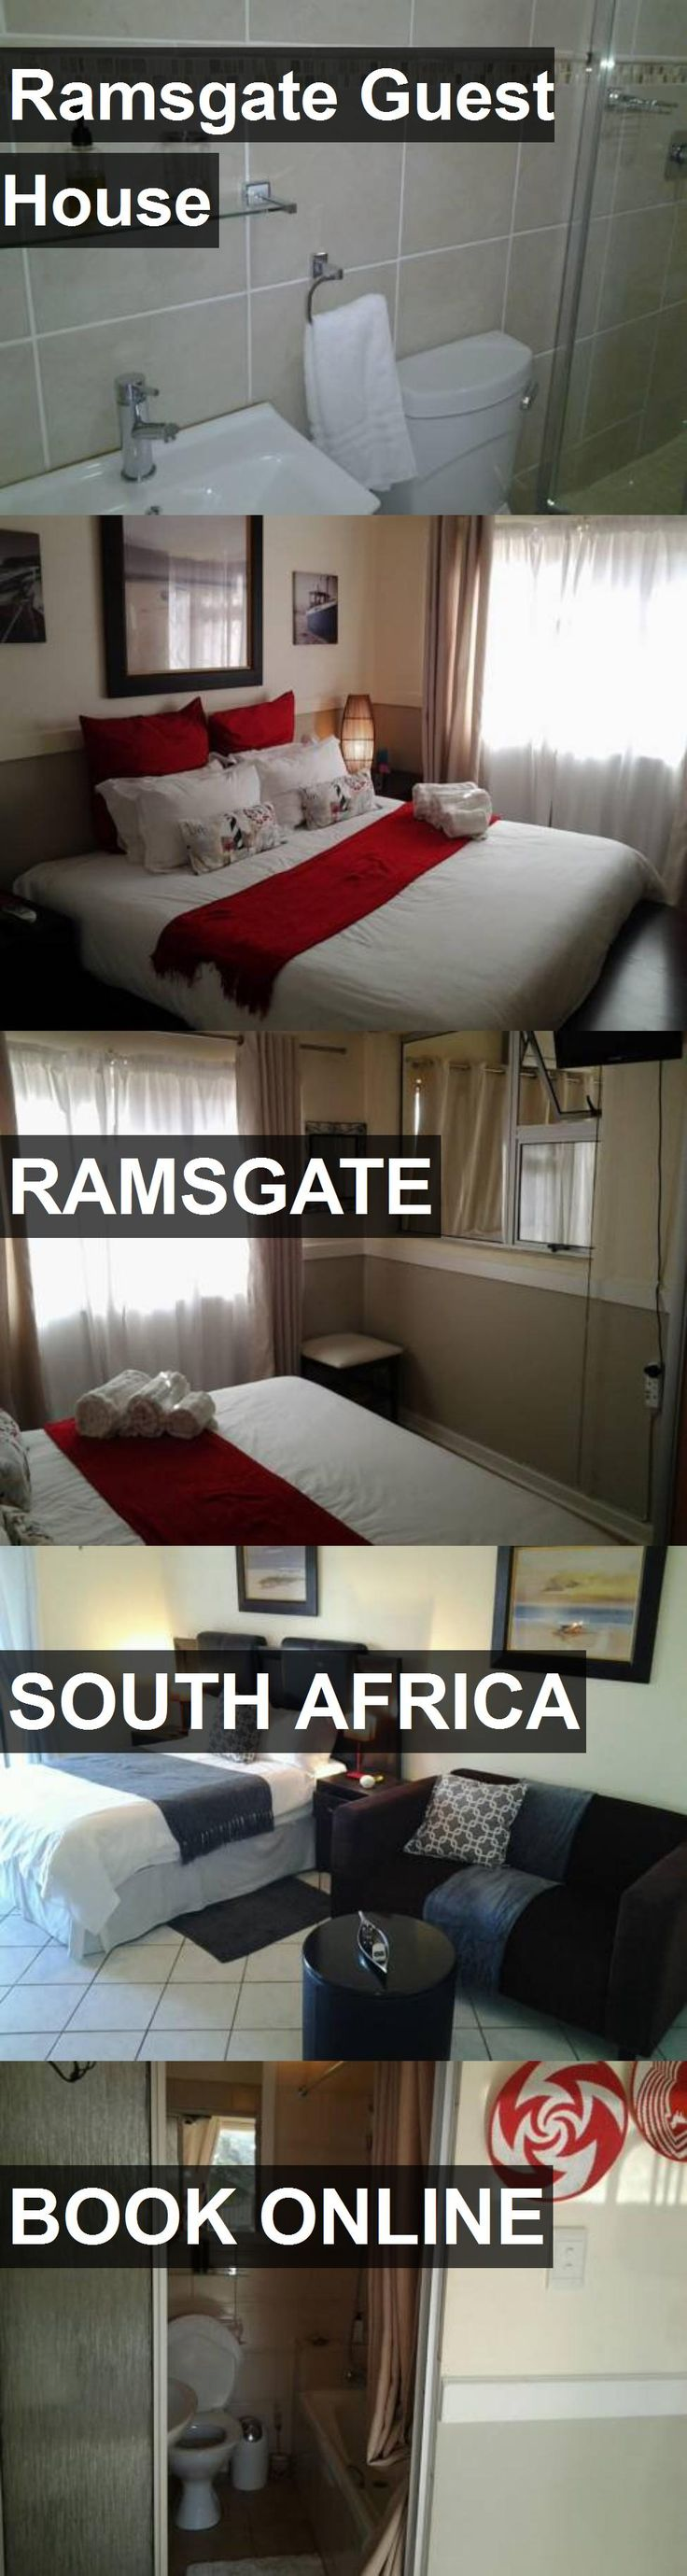 Ramsgate Guest House in Ramsgate, South Africa. For more information, photos, reviews and best prices please follow the link. #SouthAfrica #Ramsgate #travel #vacation #guesthouse